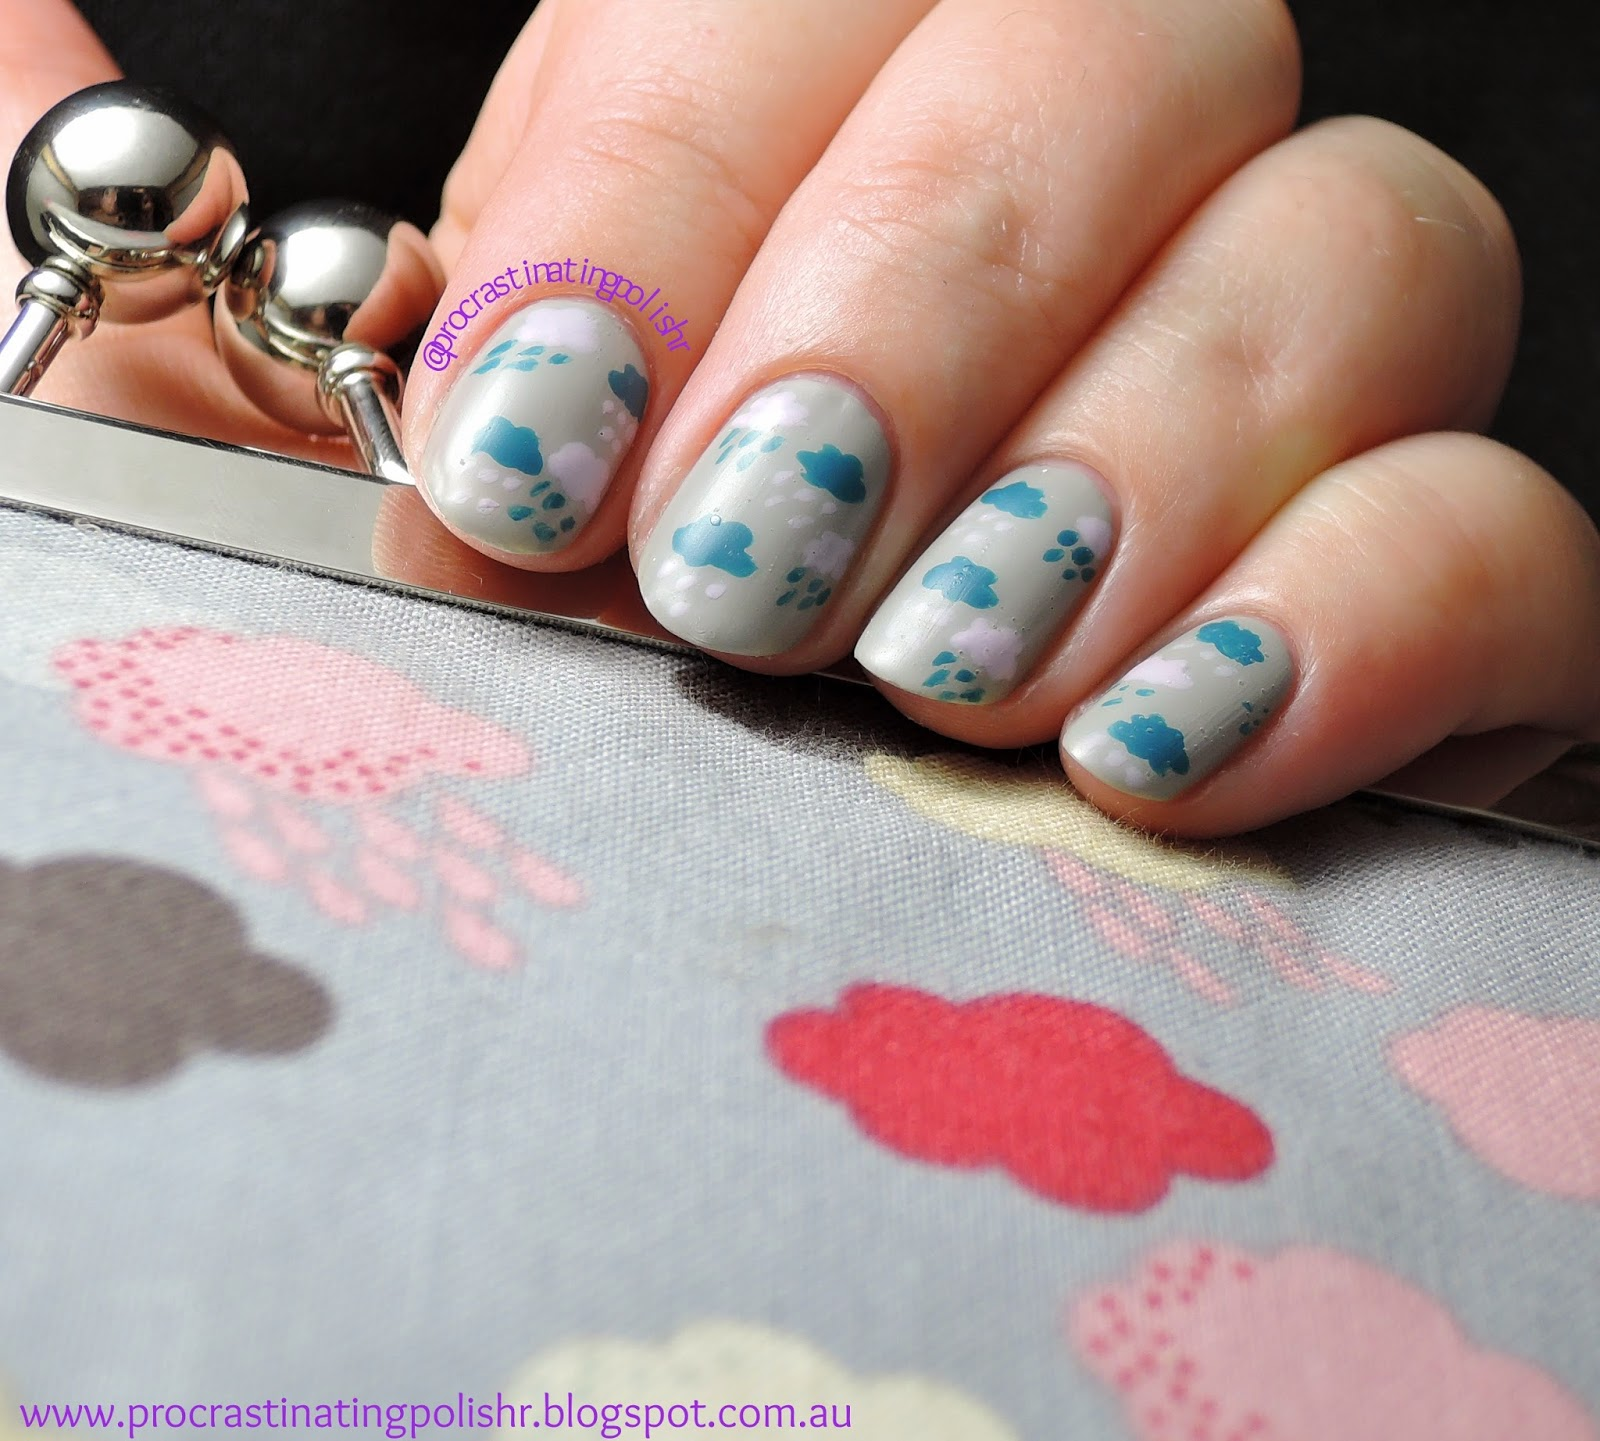 Tri Polish Tuesday - Rain Cloud Nail Art